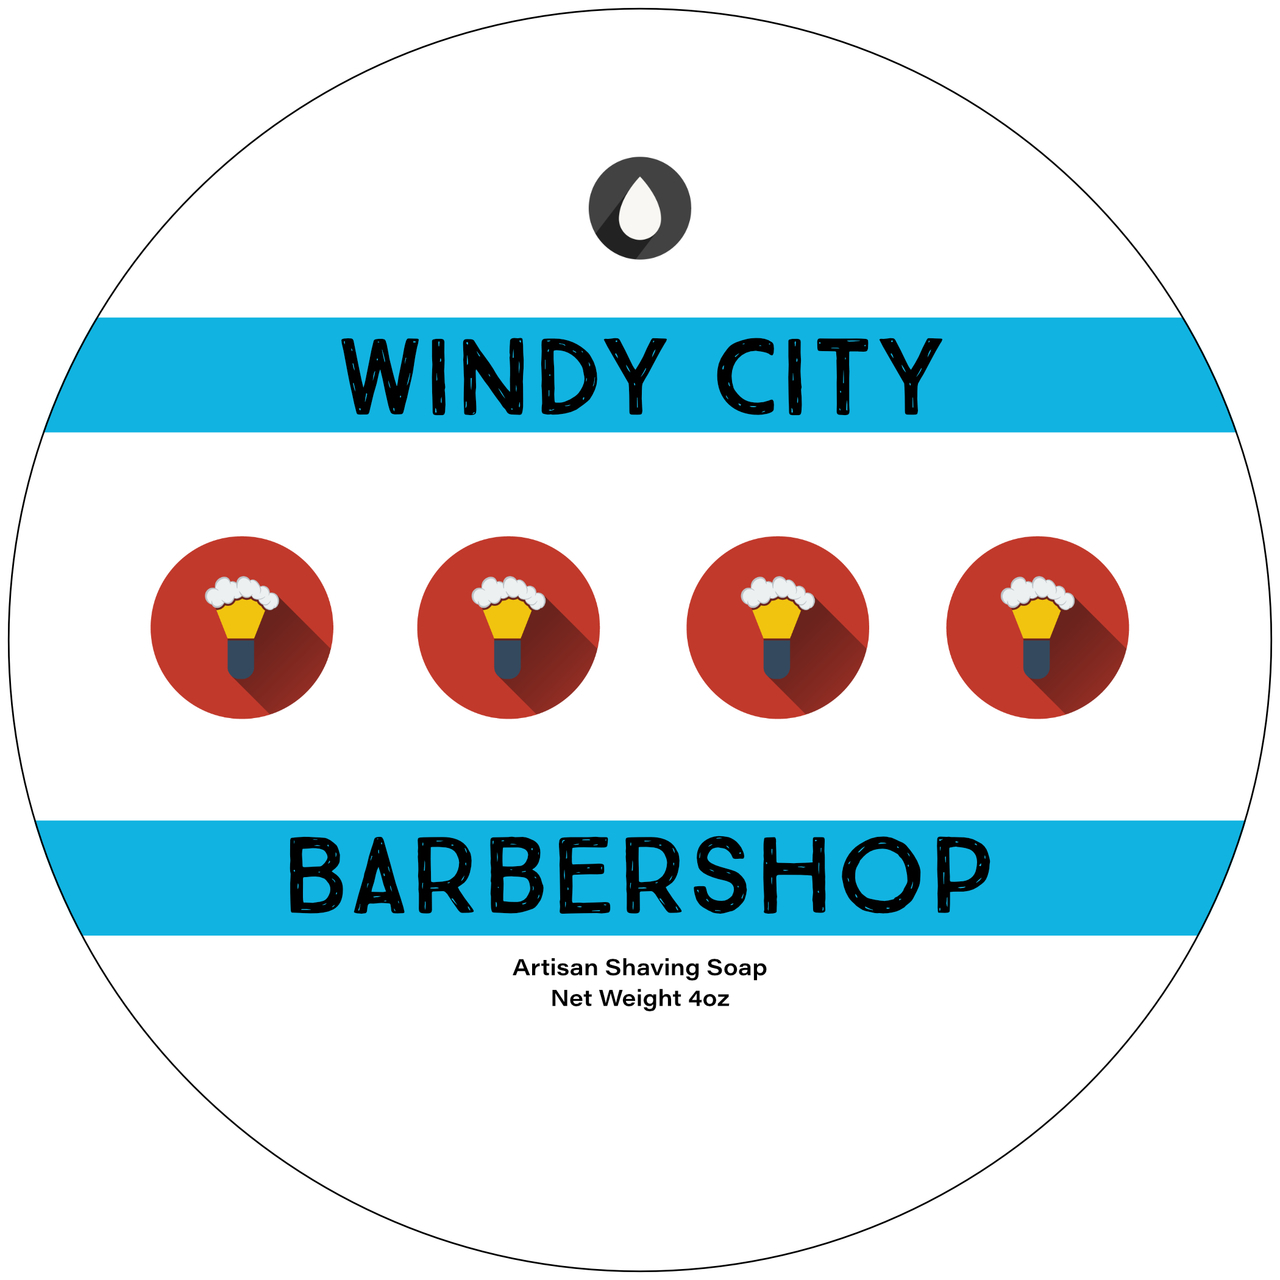 Chicago Grooming Co. (Formerly Oleo Soapworks) - Windy City Barbershop - Soap image